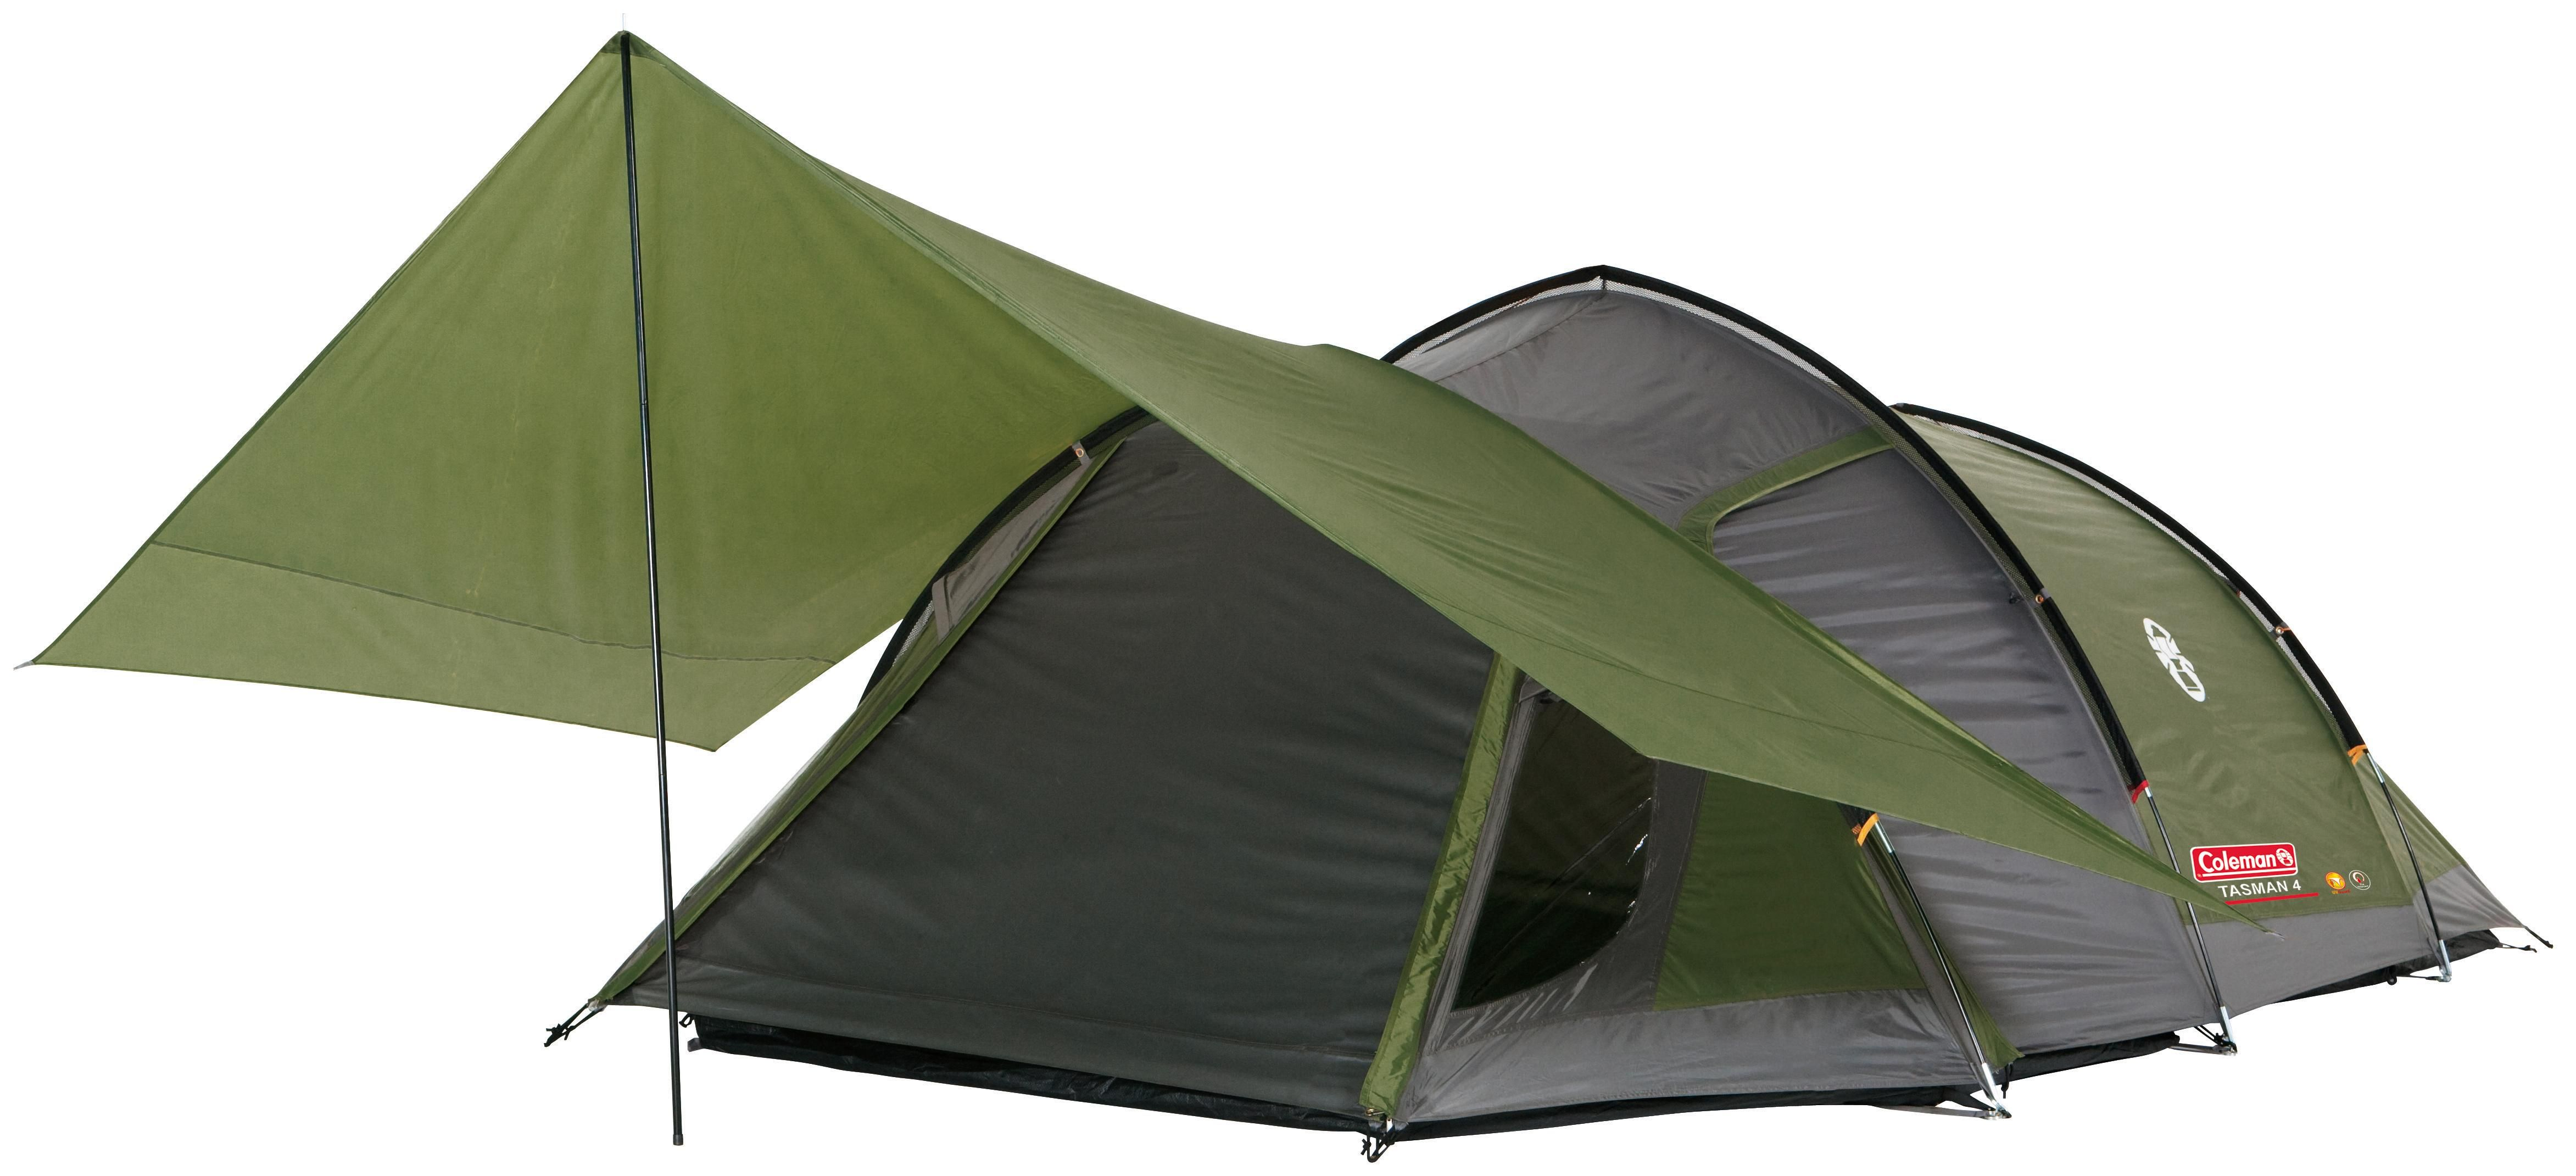 Browse through a great range of Tent Extensions u0026 Canopies at Millets including Air Porches u0026 Awnings from top brands like Vango Eurohike u0026 Berghaus.  sc 1 st  Pinterest & Universal Tarp Shelter | Camping Accessories | Pinterest | Camping ...